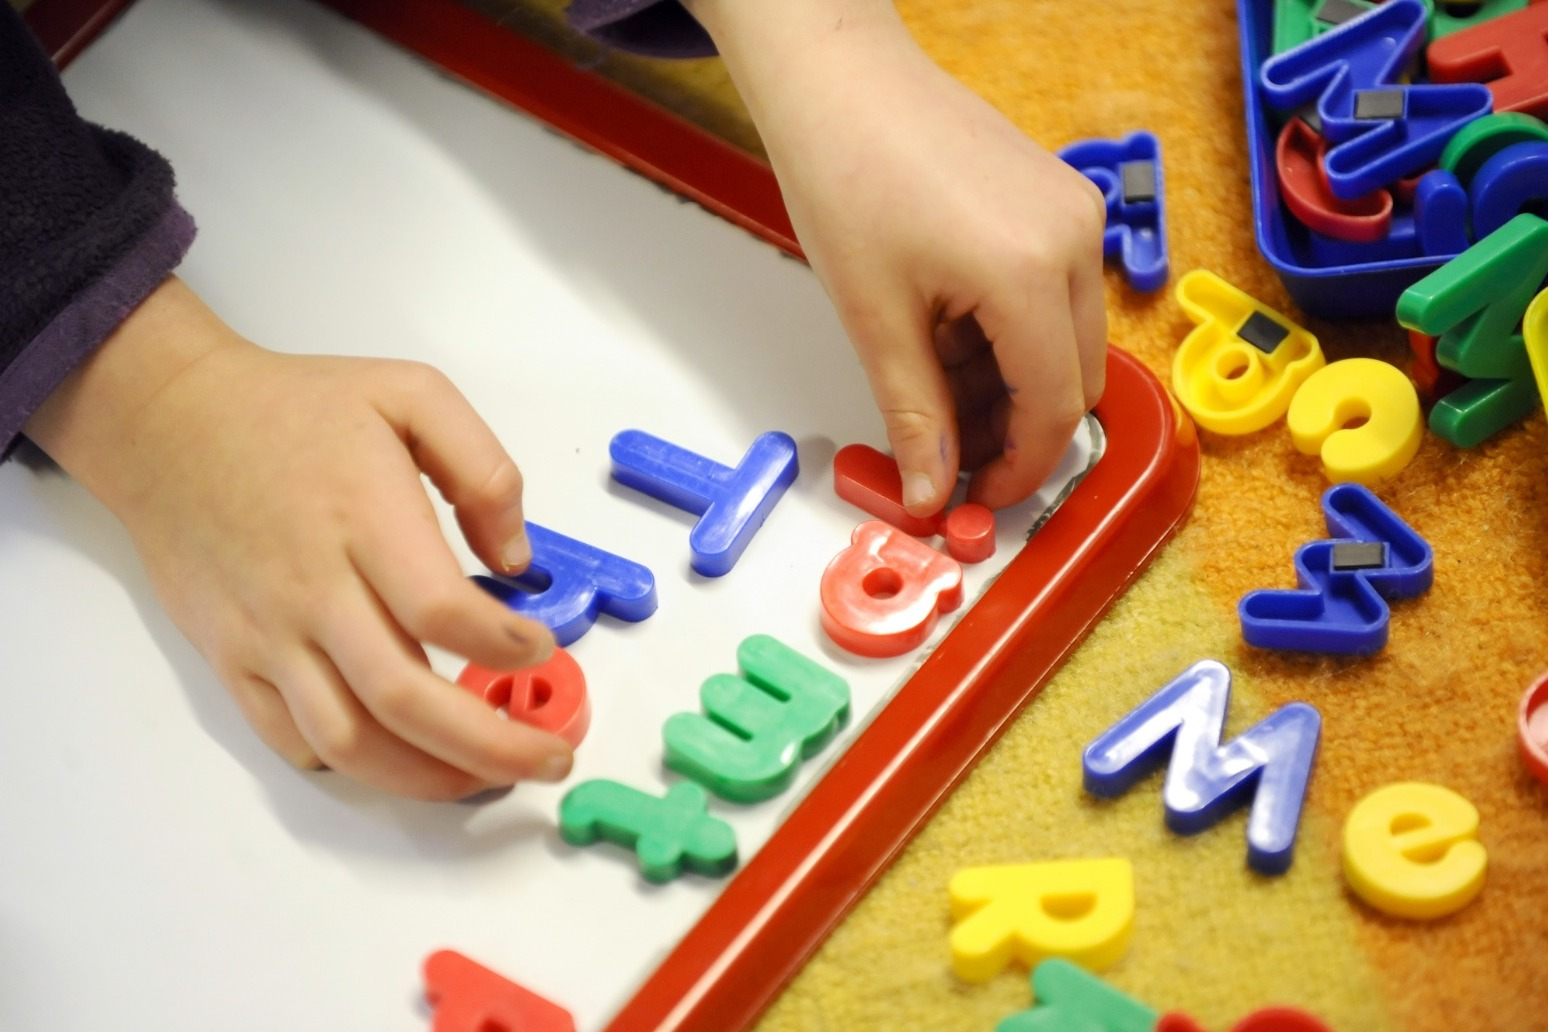 Pupils to be offered extra tuition and option to repeat year under £1.4bn plan